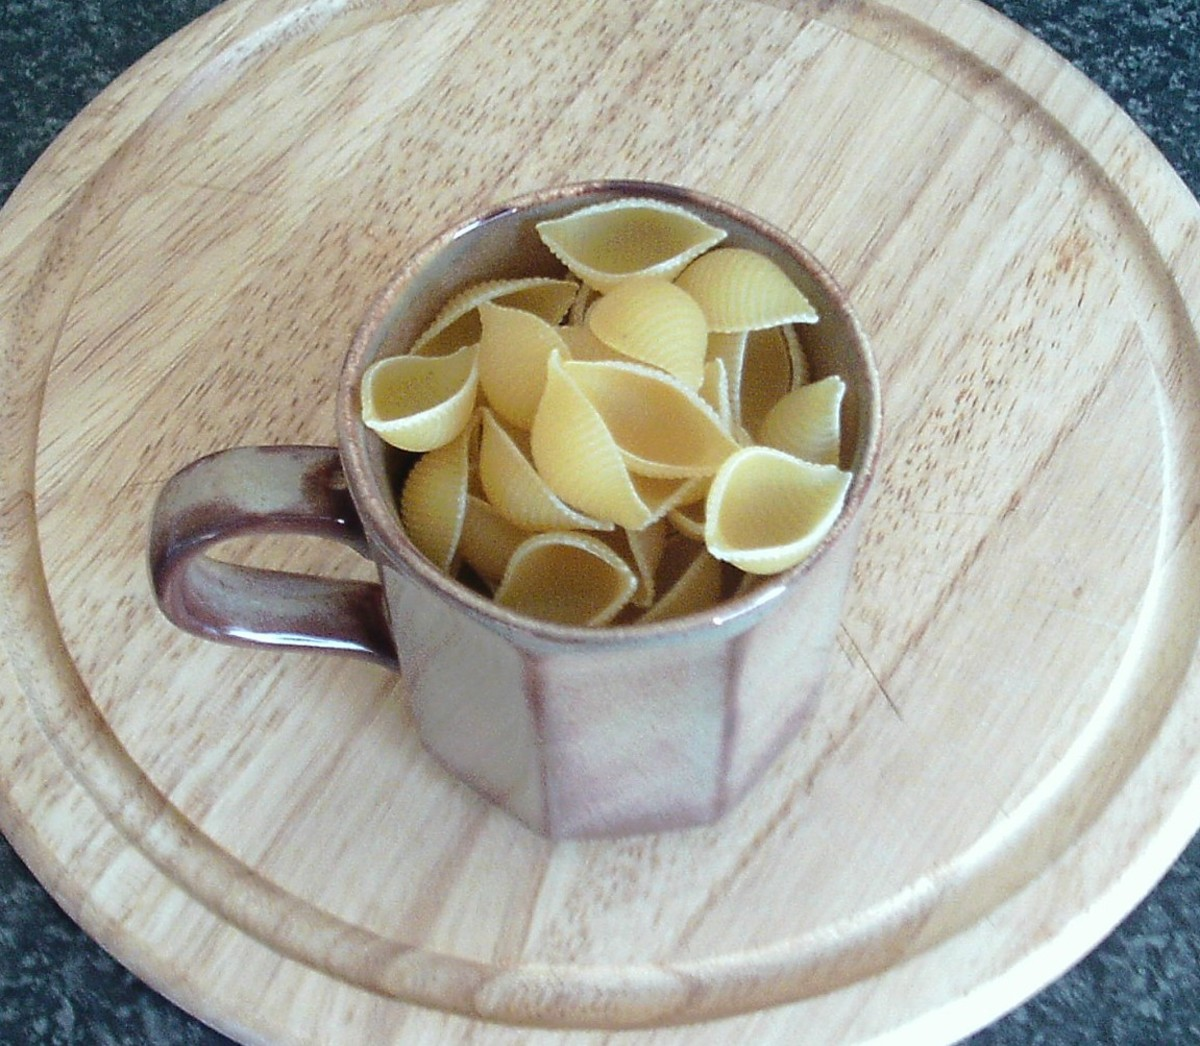 Mug of dried pasta